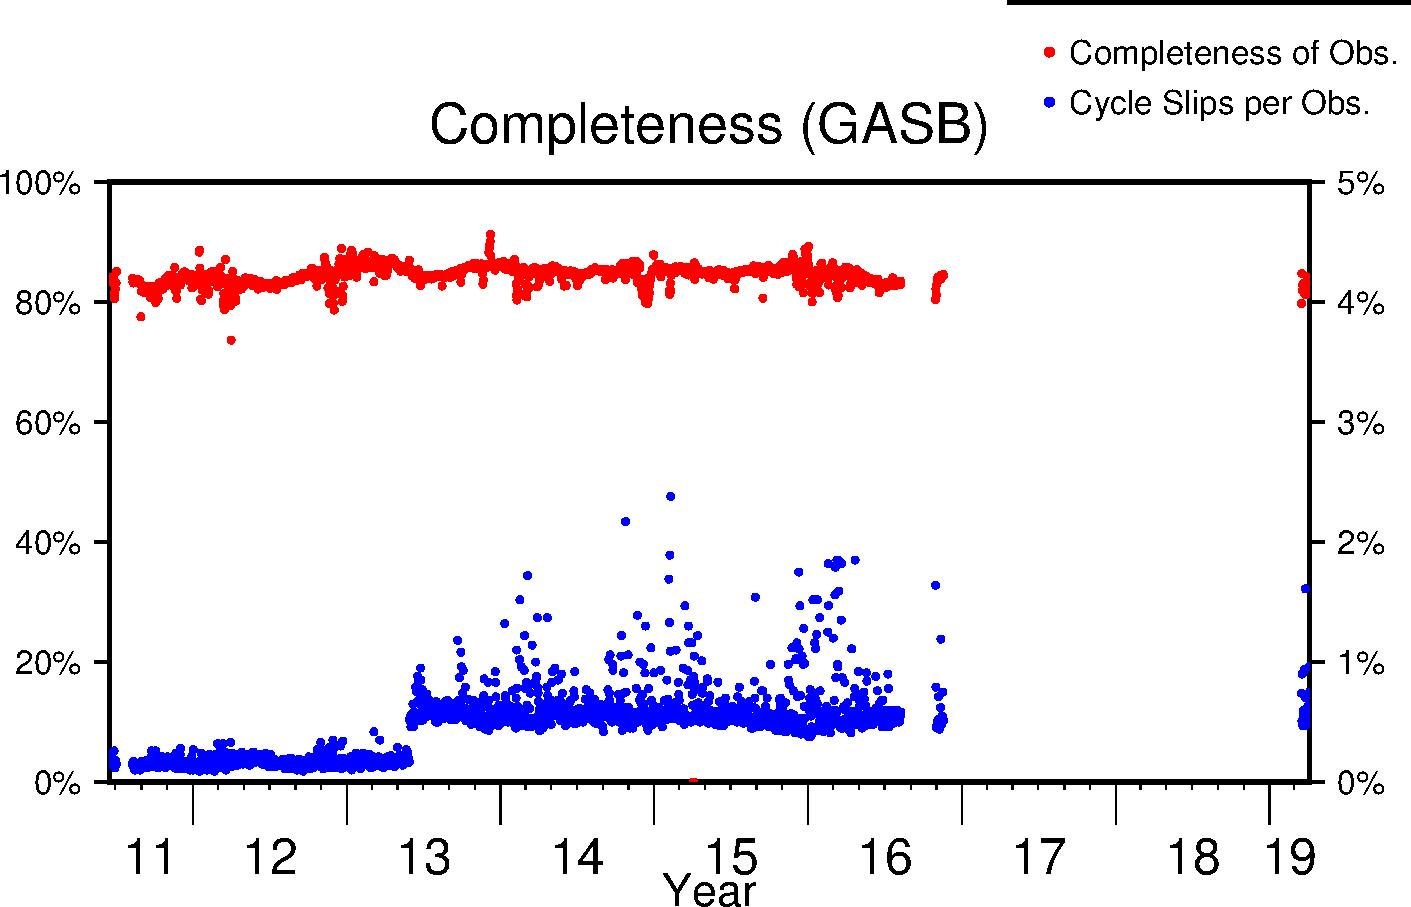 GASB completeness lifetime